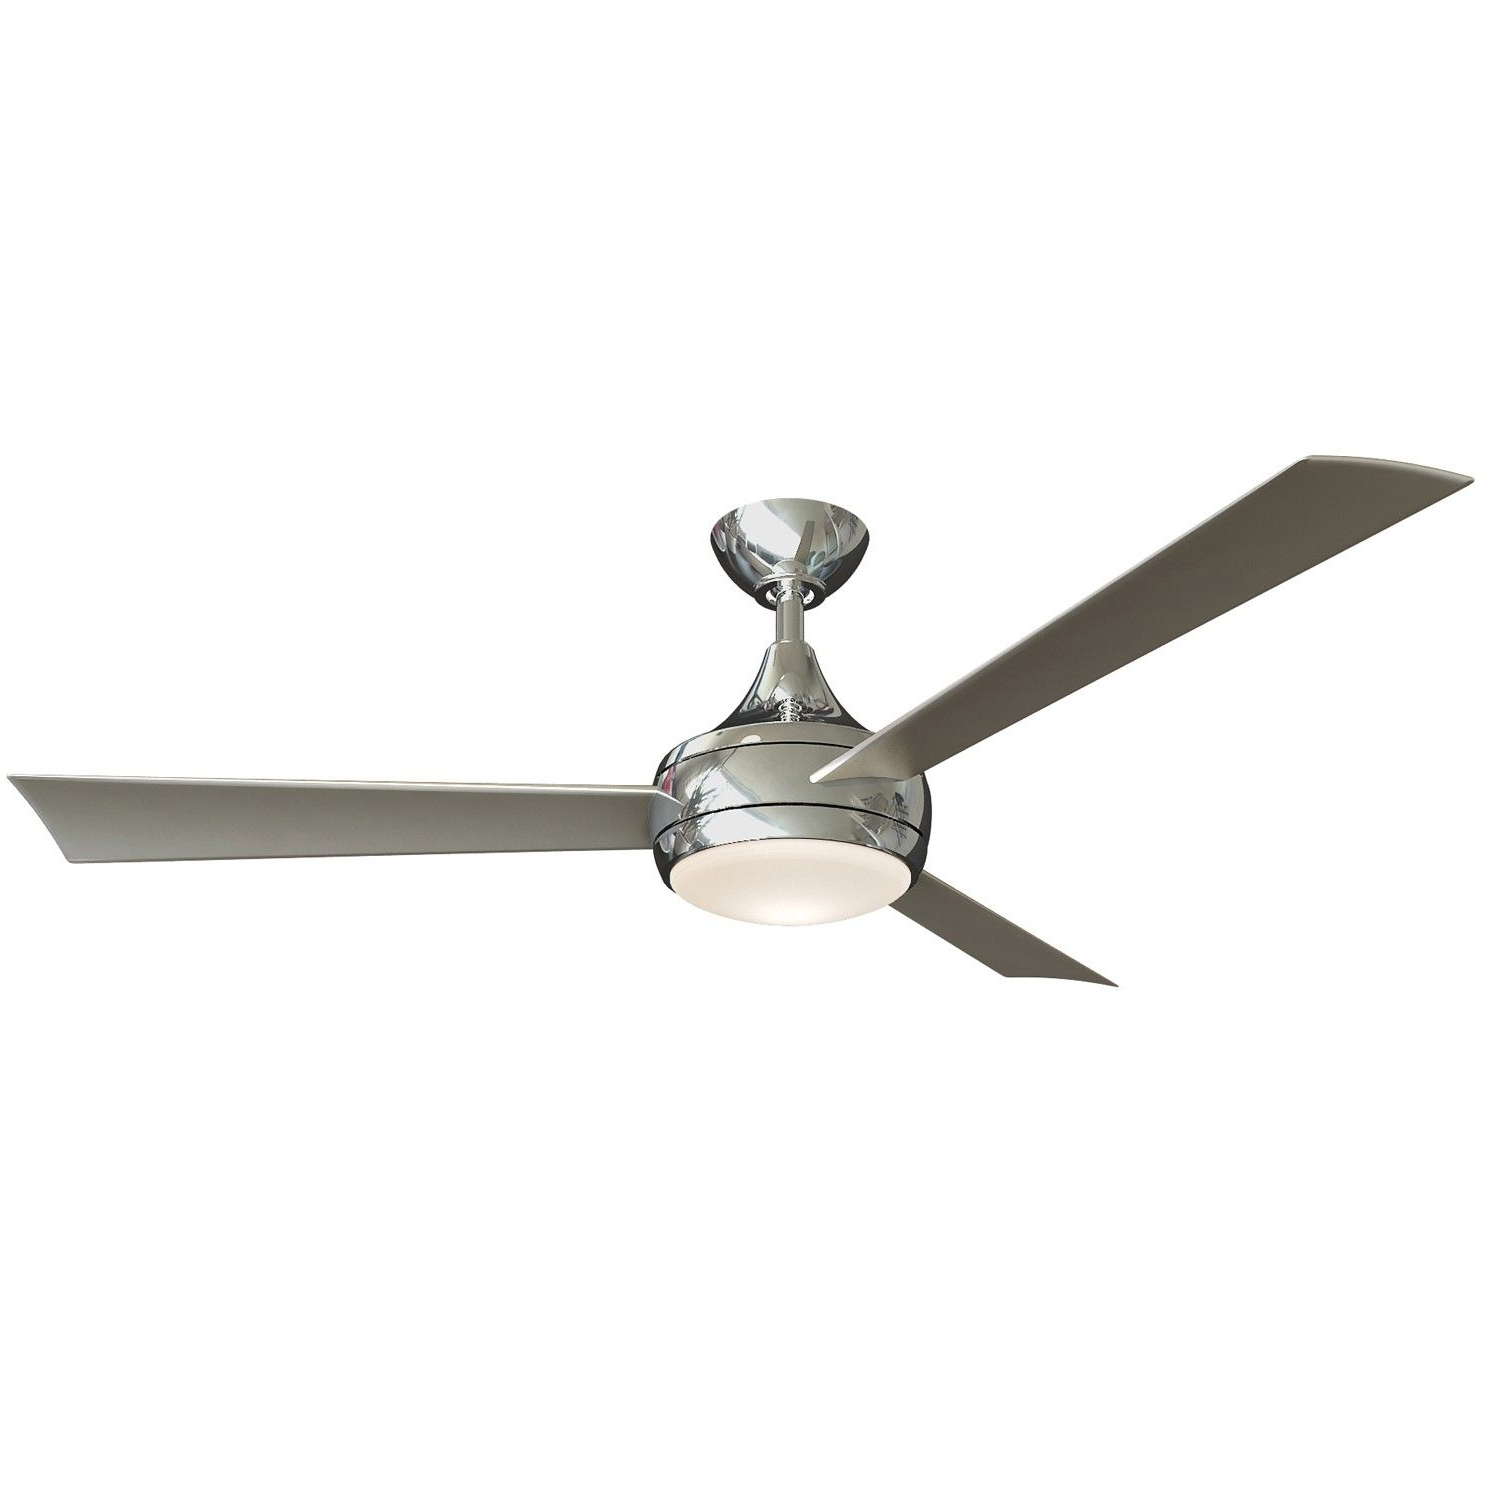 2018 Stainless Steel Outdoor Ceiling Fans With Light Intended For Friday Favorites: Top 10 Led Ceiling Fans (View 1 of 20)